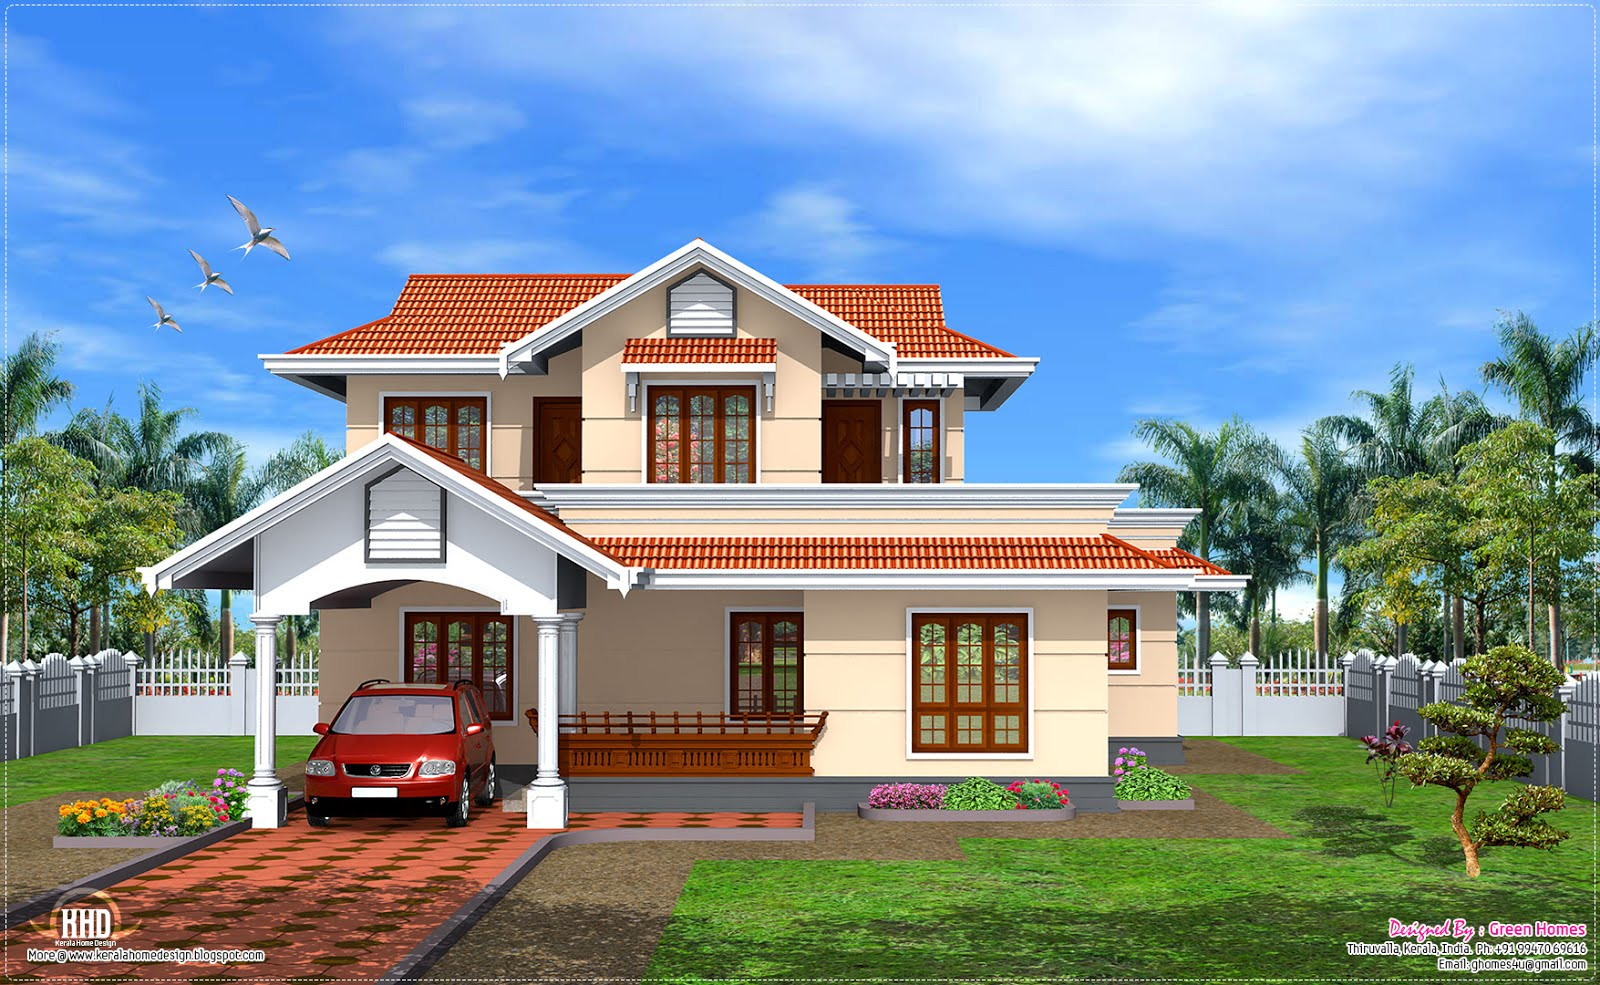 Window models for houses home design inside for Kerala house models photos